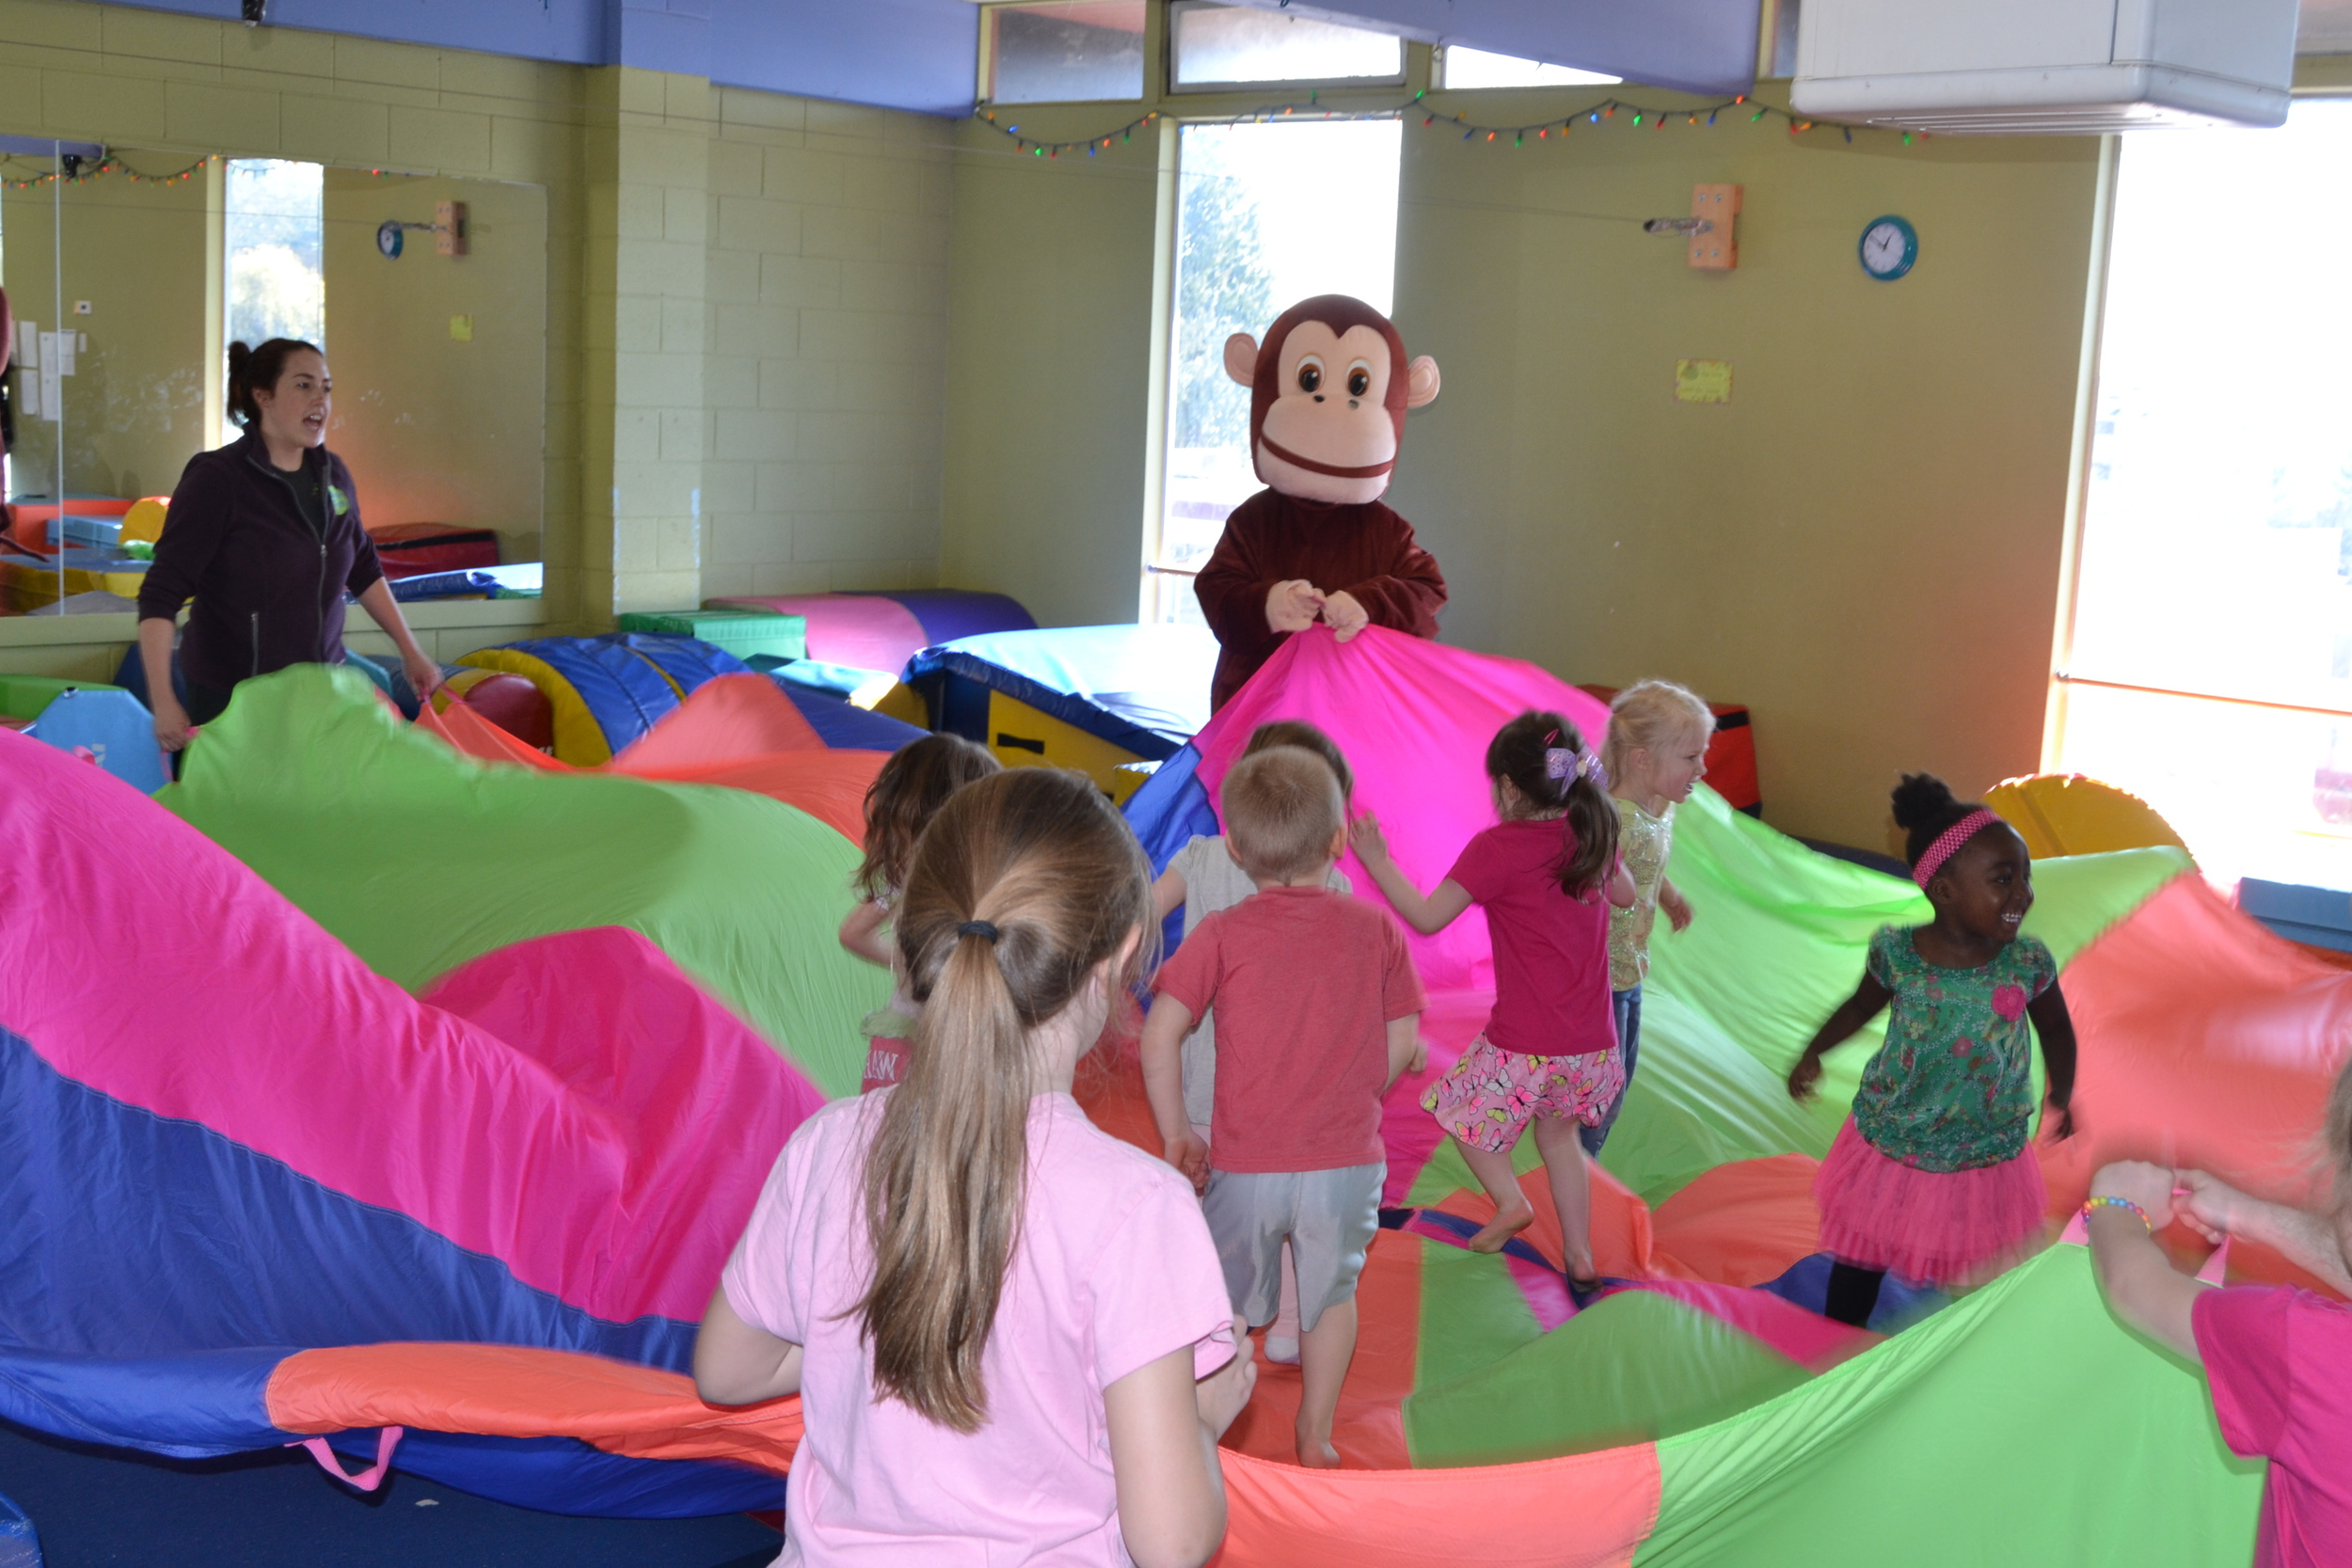 BONGO joins the party for some parachute fun.